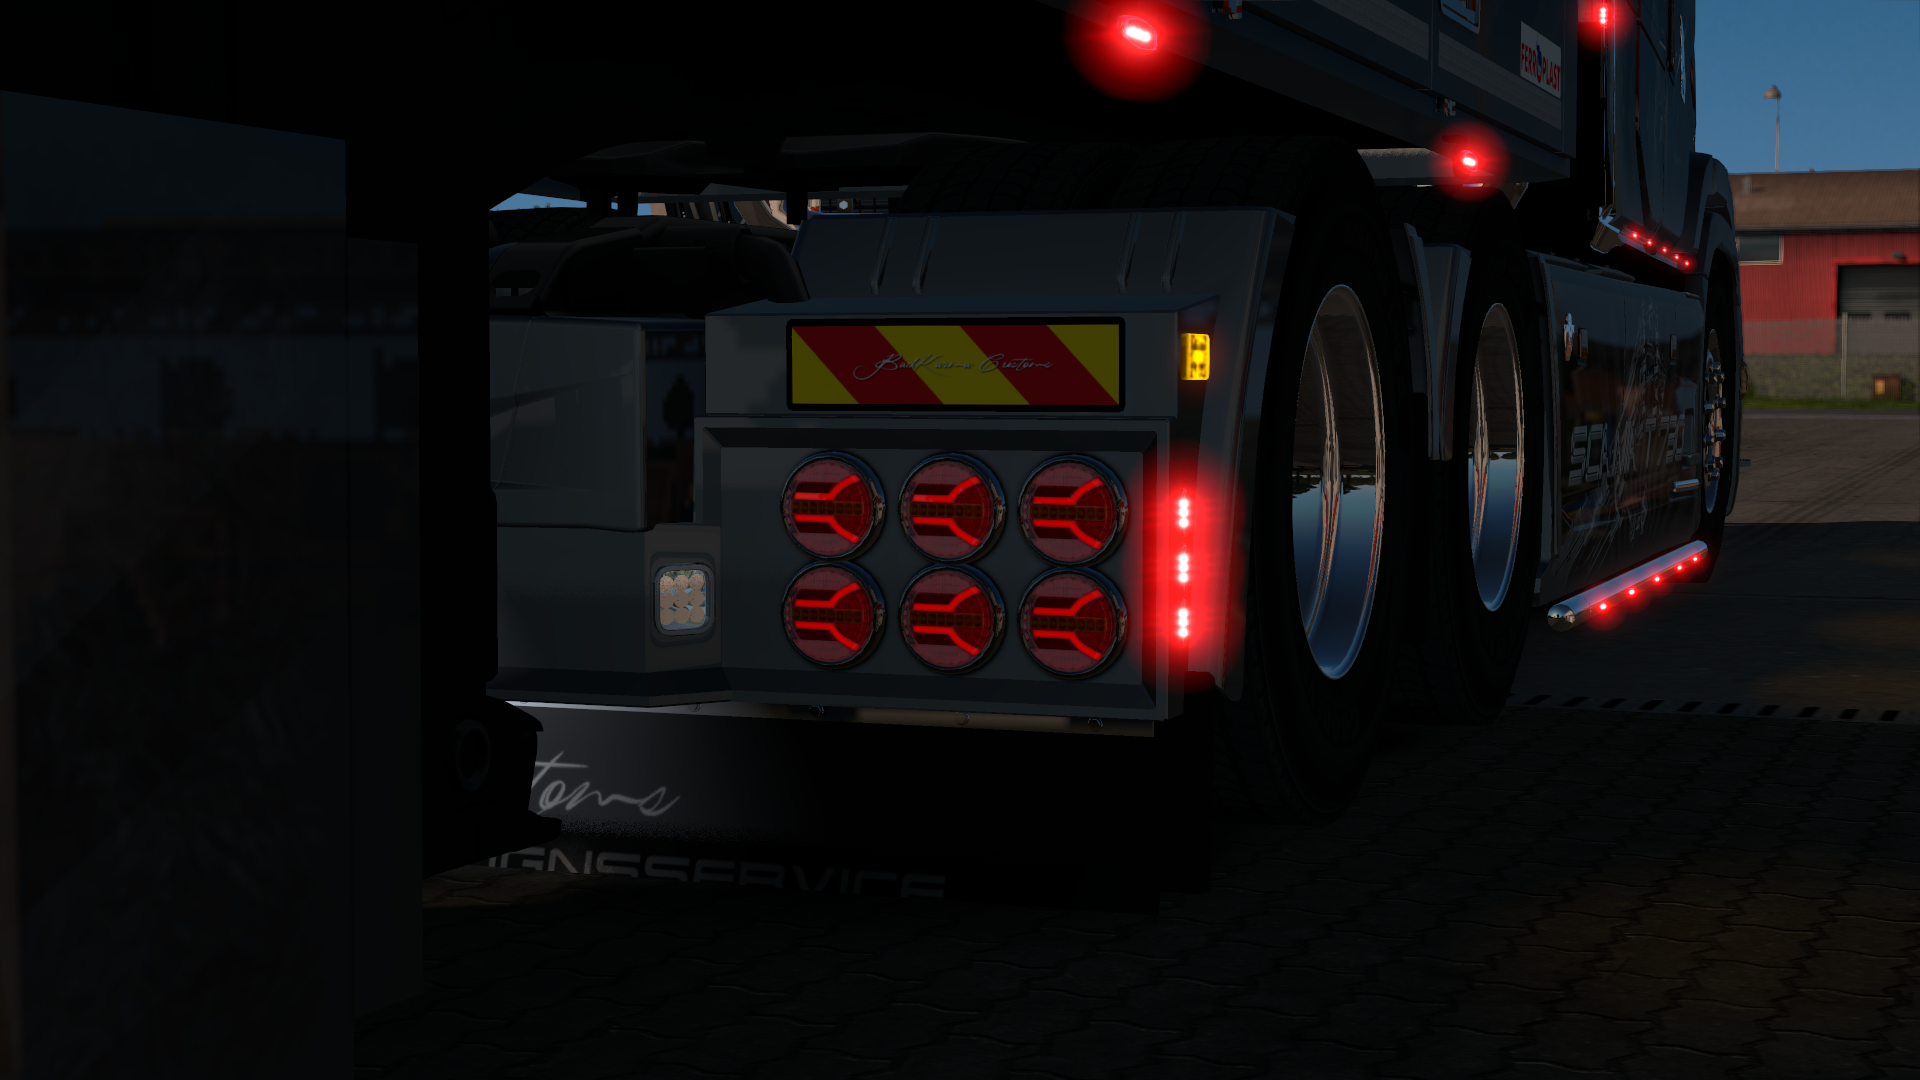 Screenshots Ets2_20190710_213834_makoo